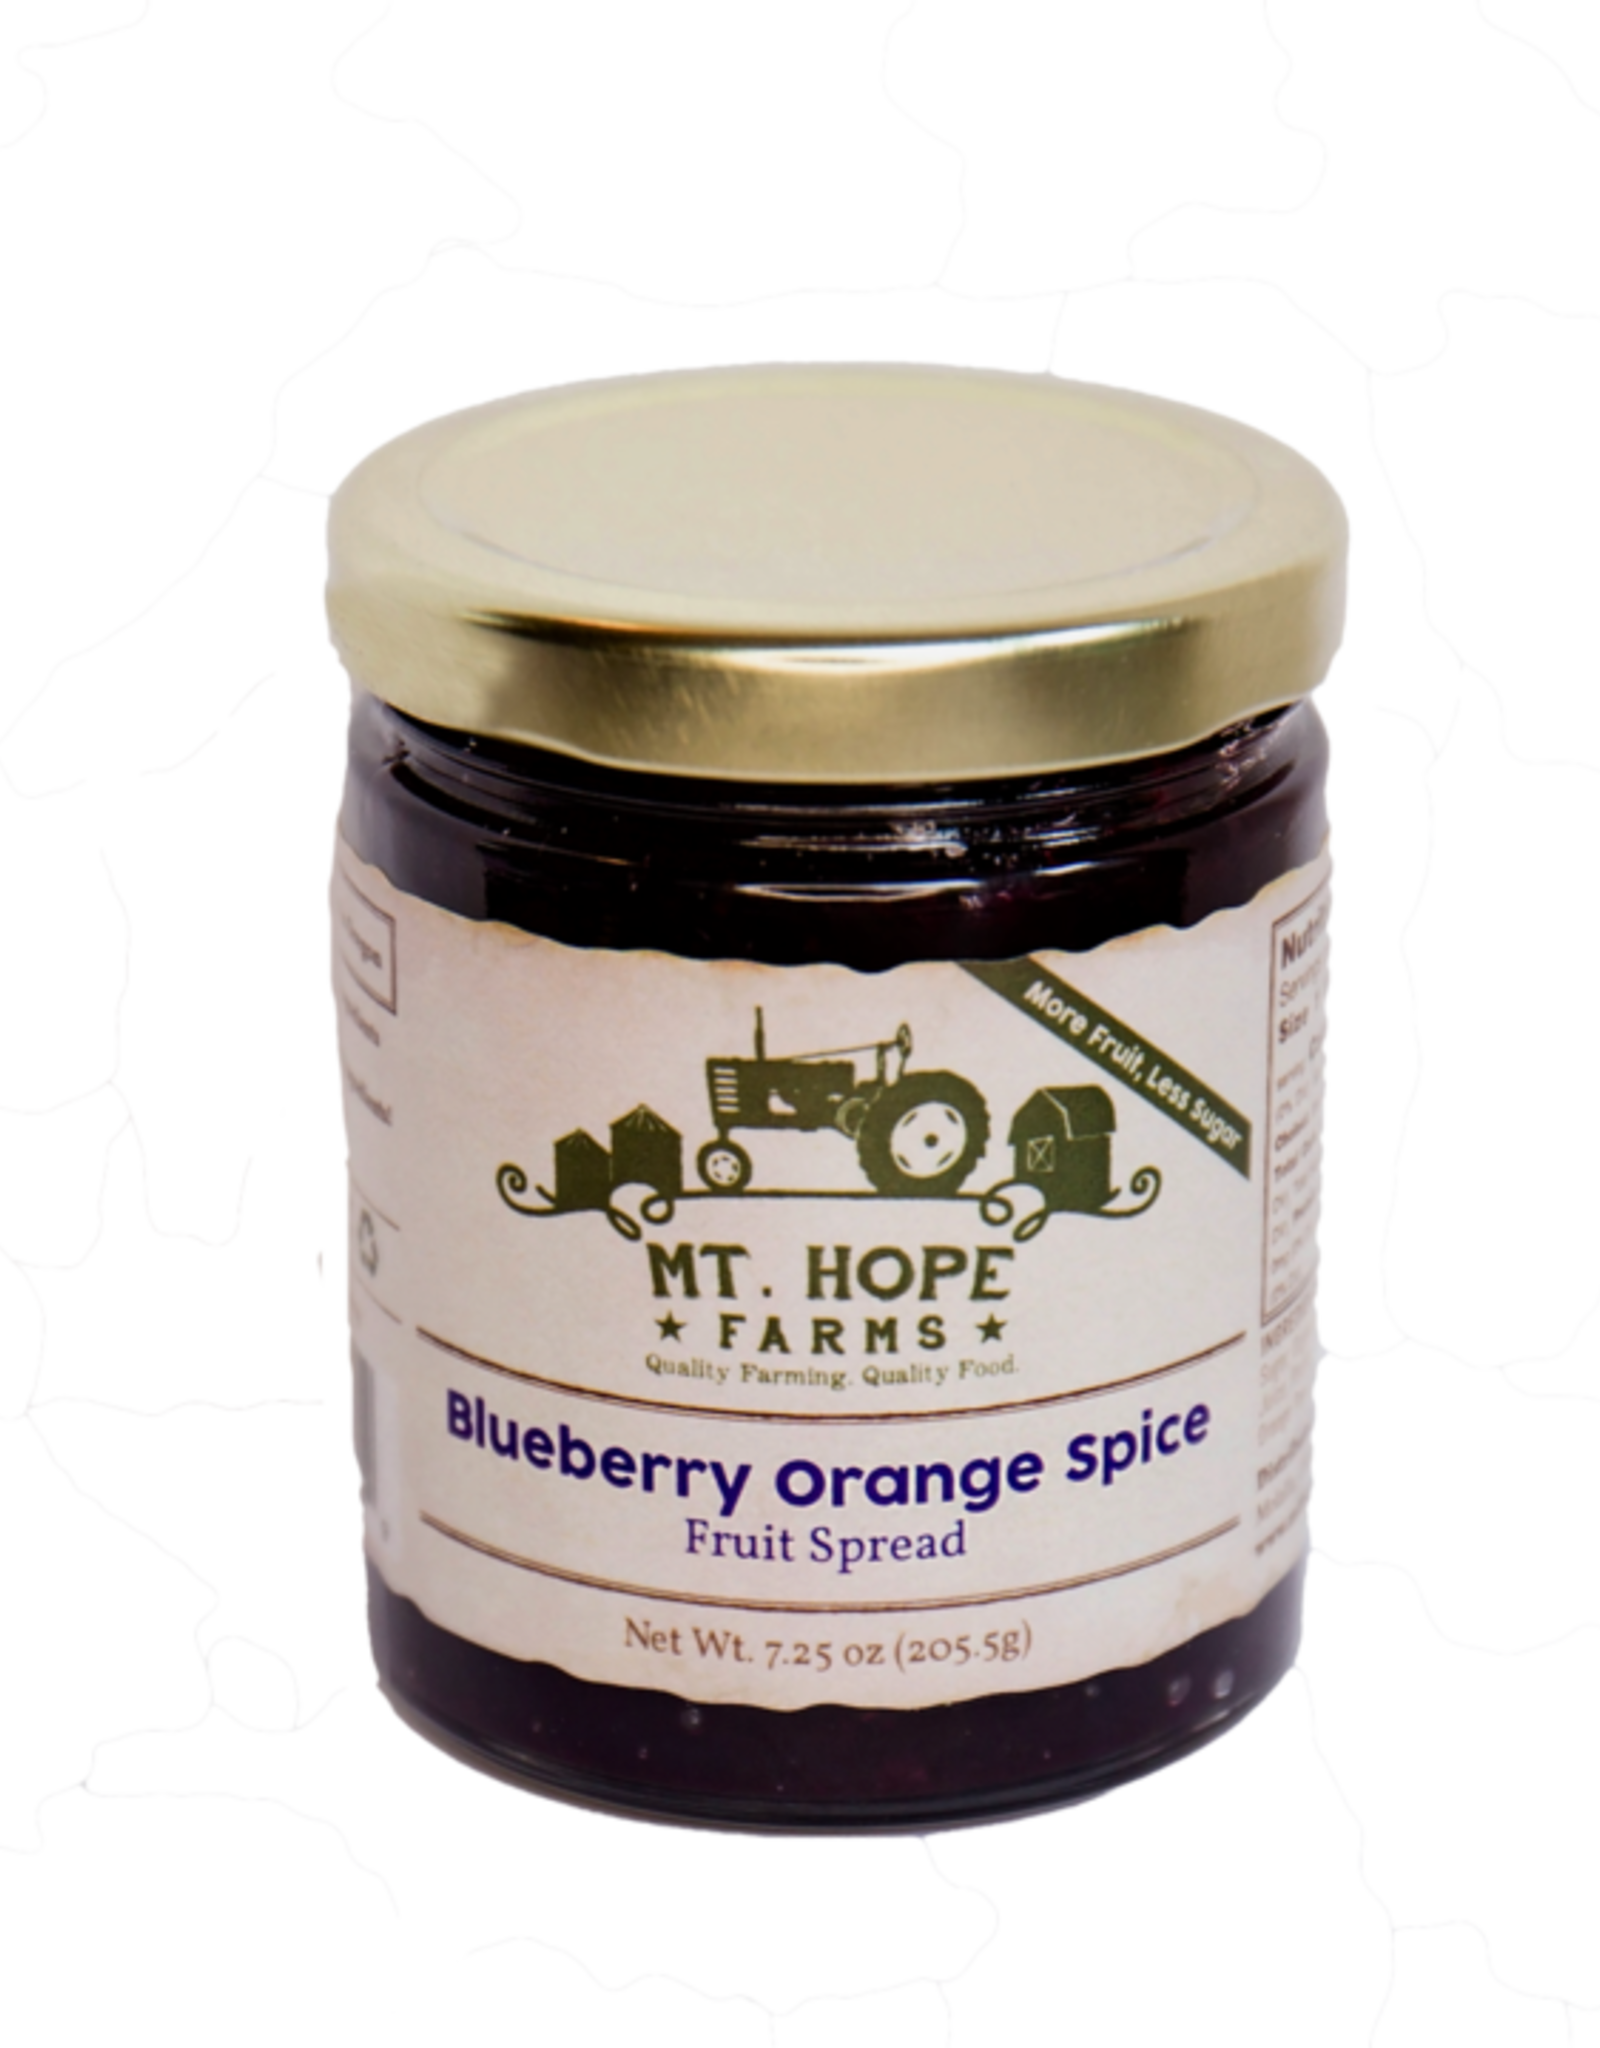 Blueberry Orange Spice Fruit Spread